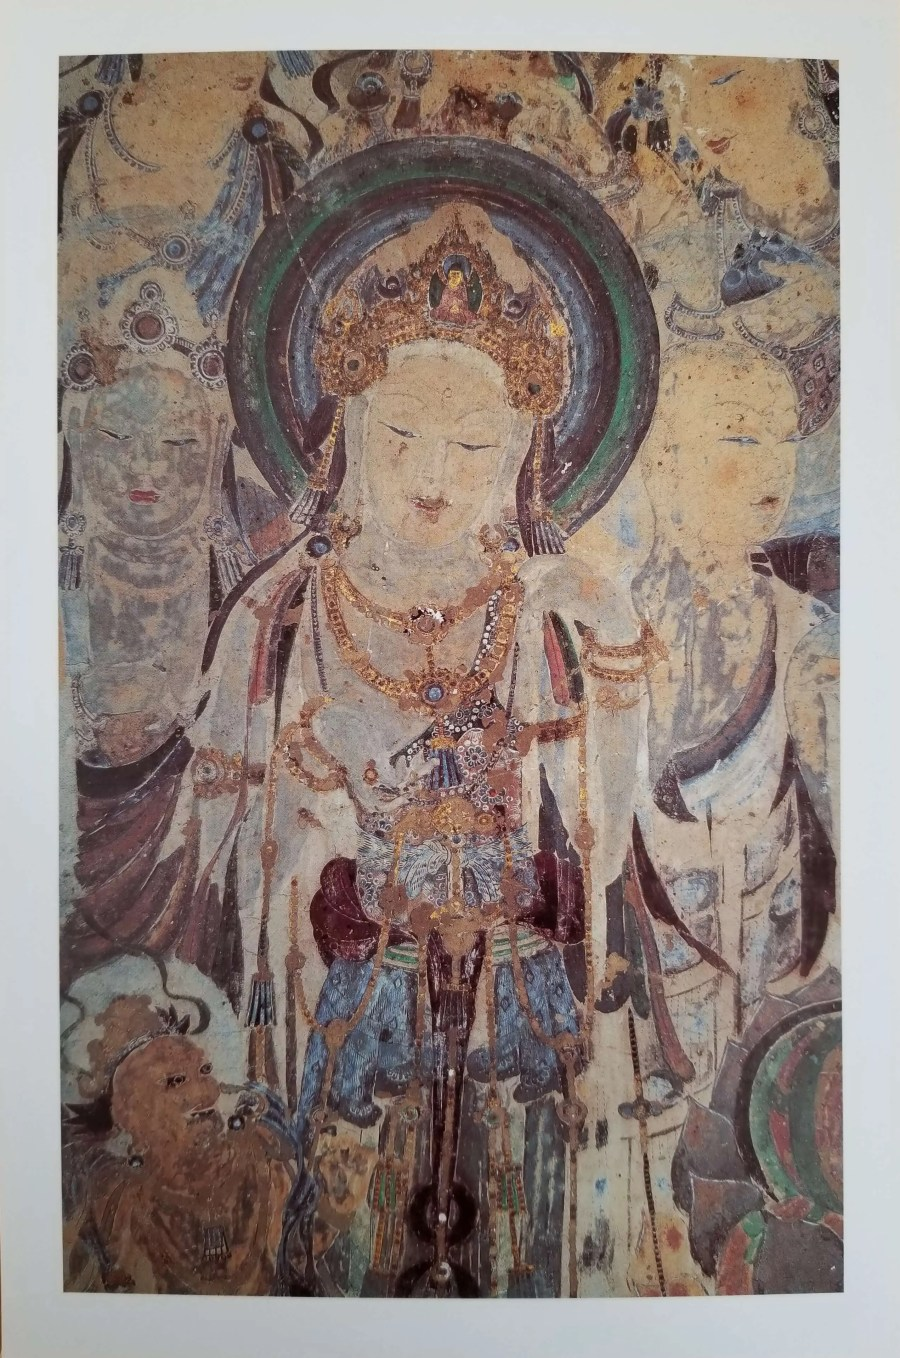 Mogao Caves Tang Dynasty painting